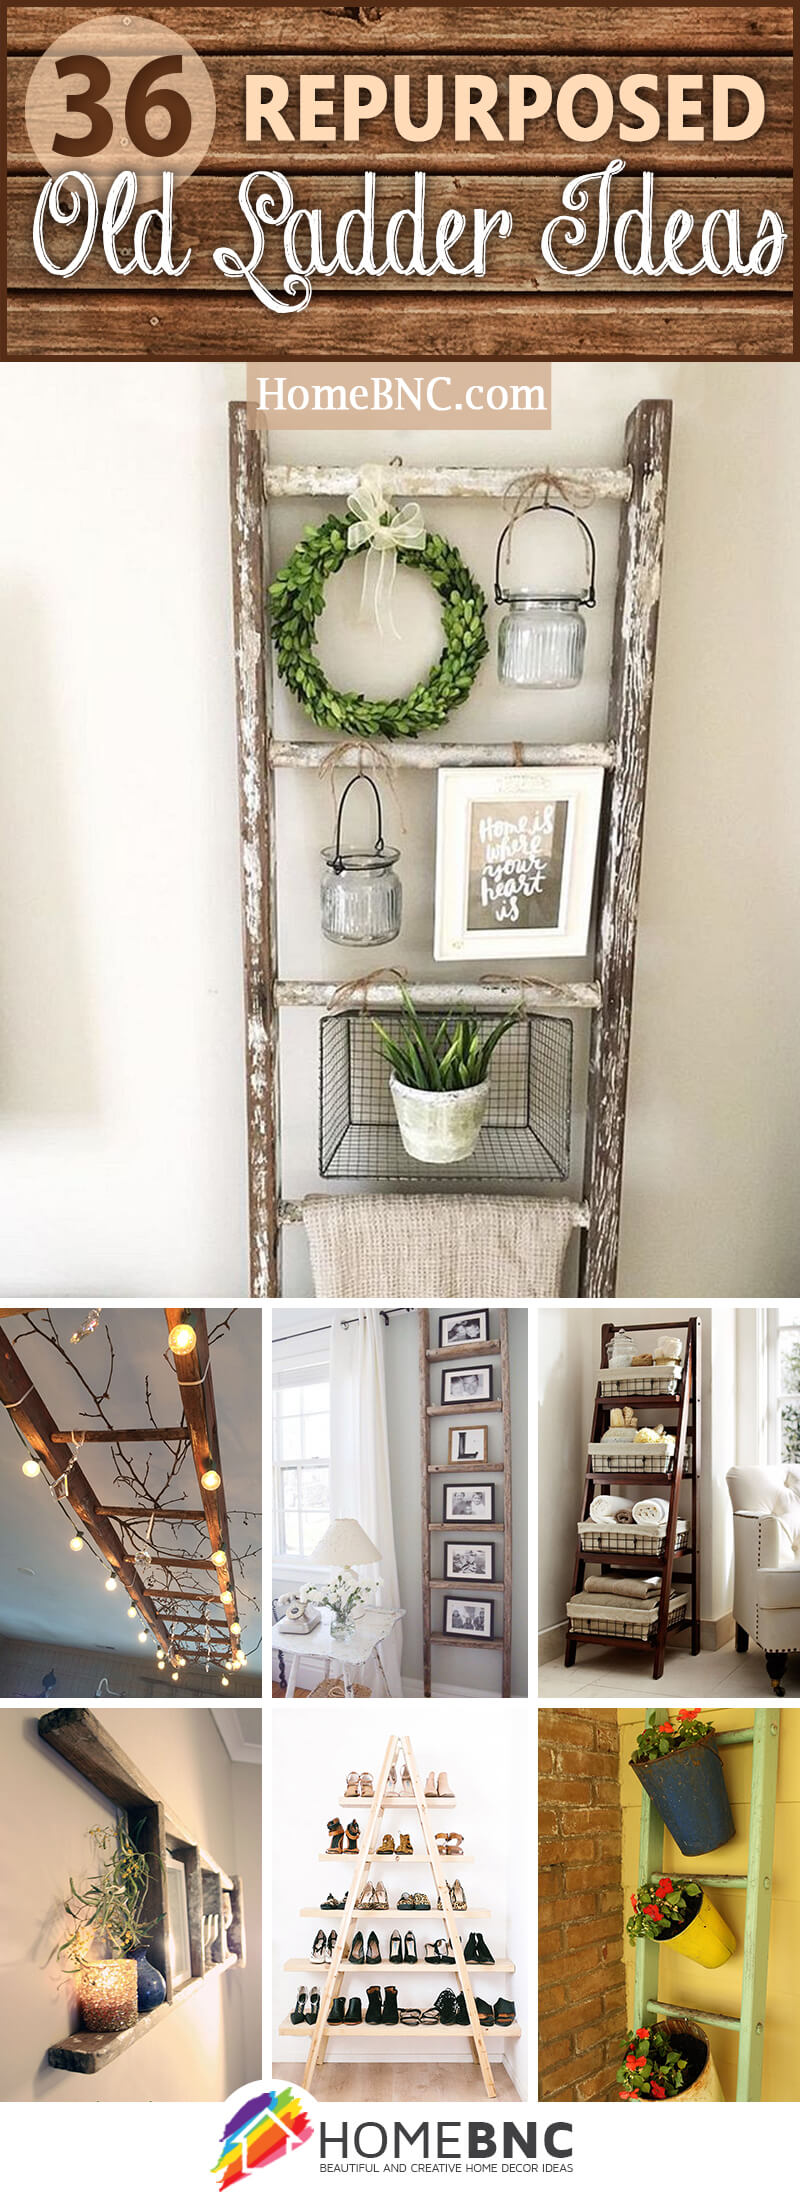 36 Best Repurposed Old Ladder Ideas and Designs for 2018